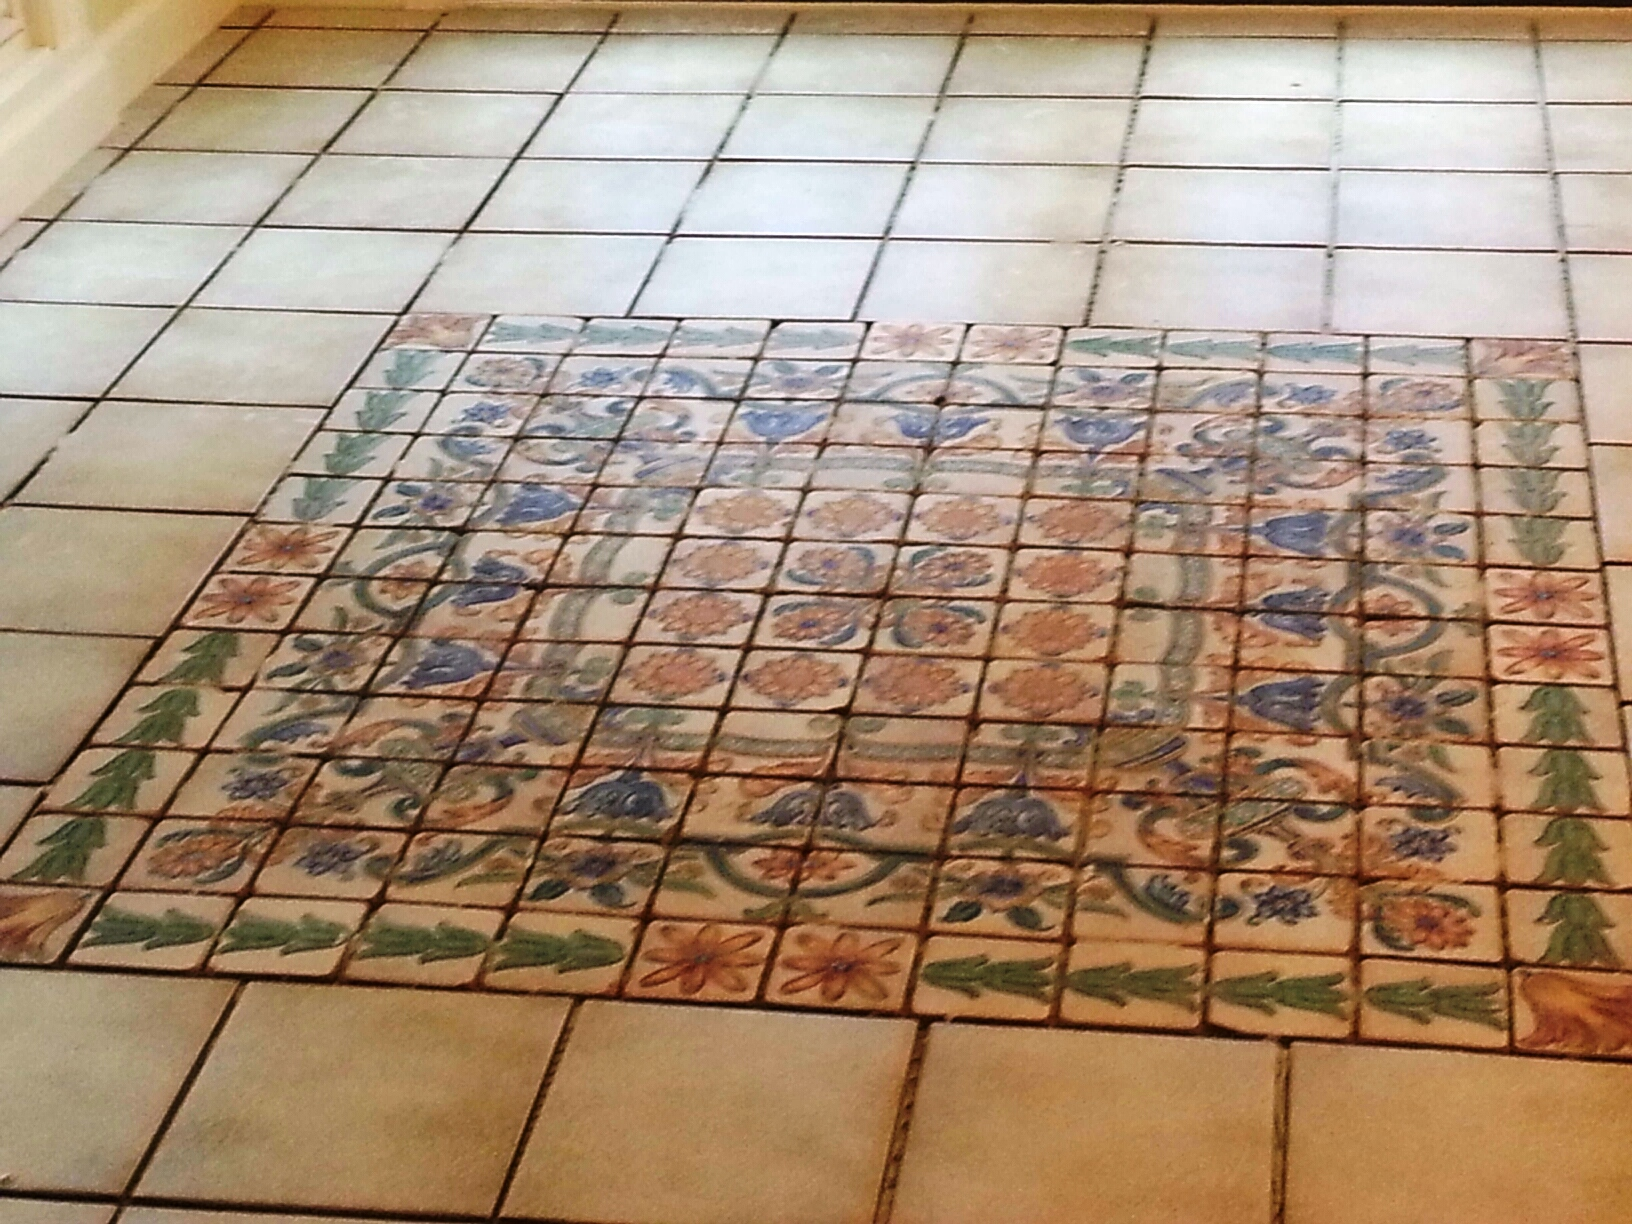 Sun Room Ceramic Tile And Ceramic Hand Painted Mosaic Are